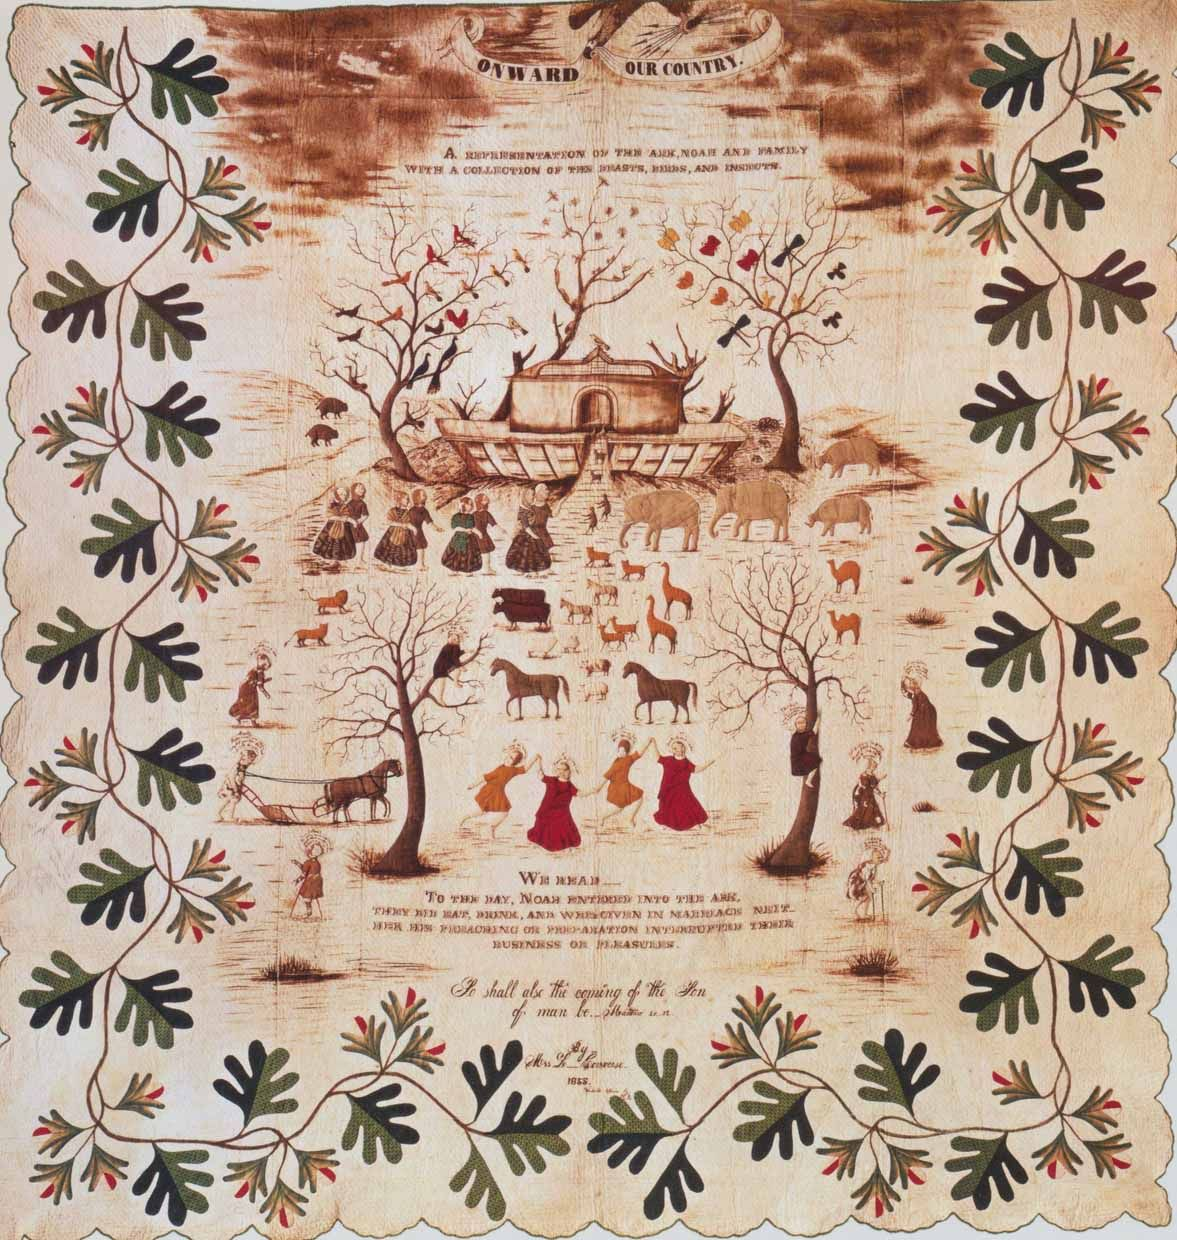 Noah S Ark Quilt 1853 Made By Lutheria Converse Woodville New York Art Quilts Applique Quilts Vintage Quilts